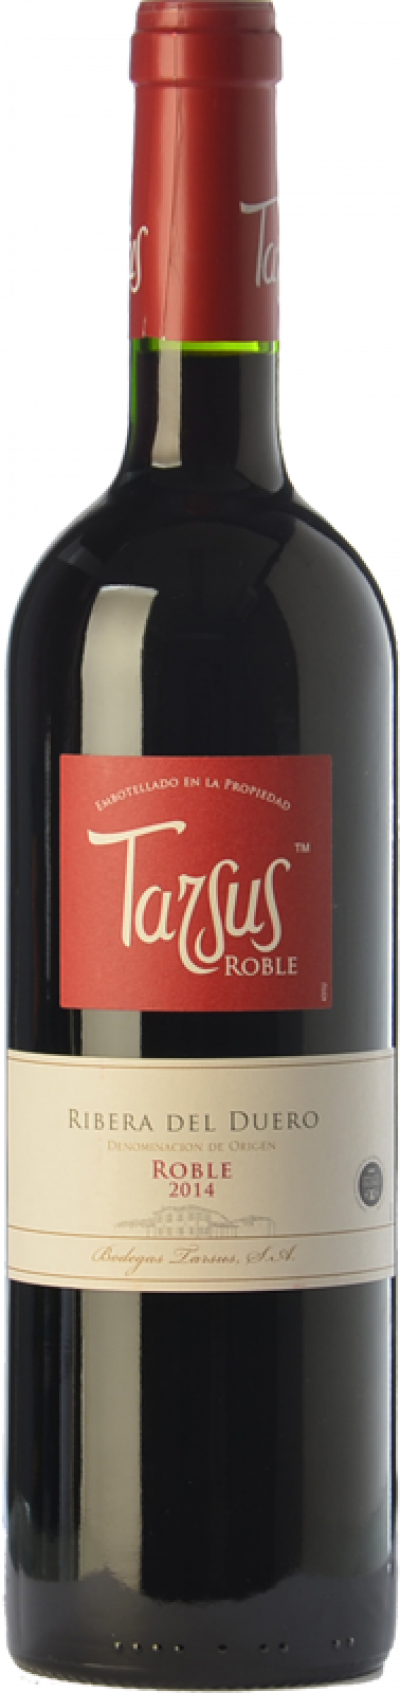 Tarsus Roble 2015